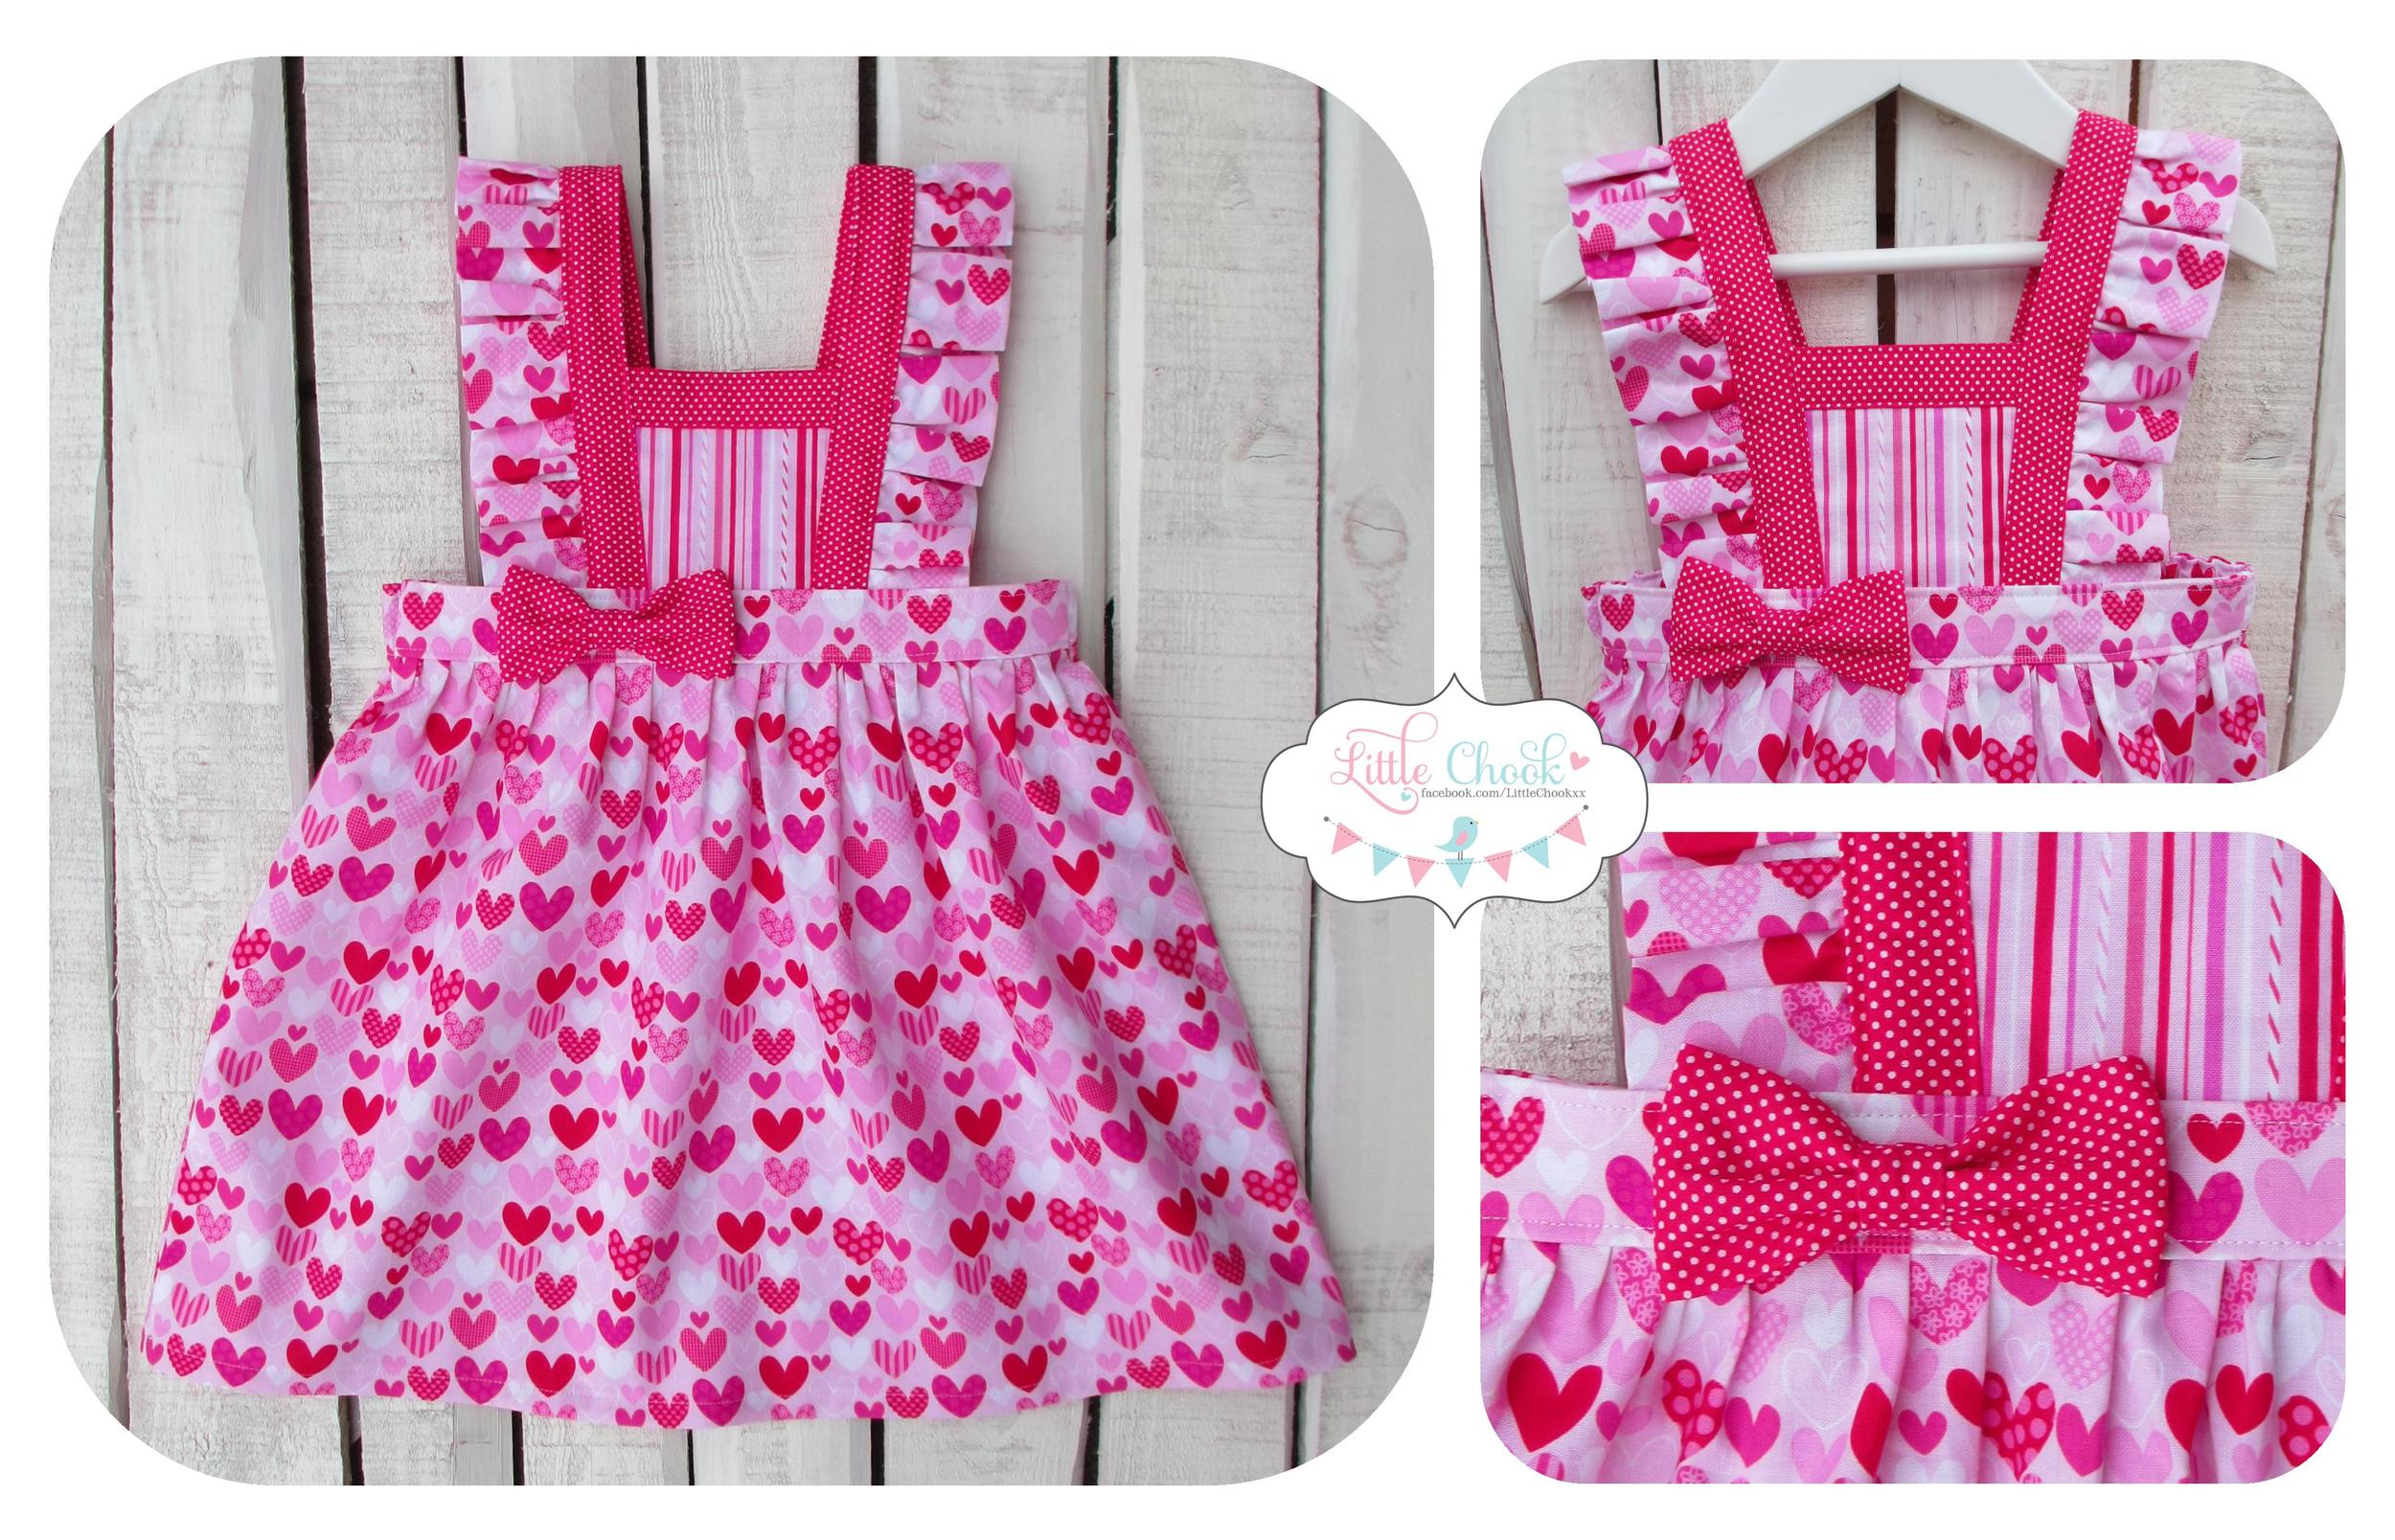 Little Chook - Boo Pinny with Ruffle Sleeves & a Bow.jpg